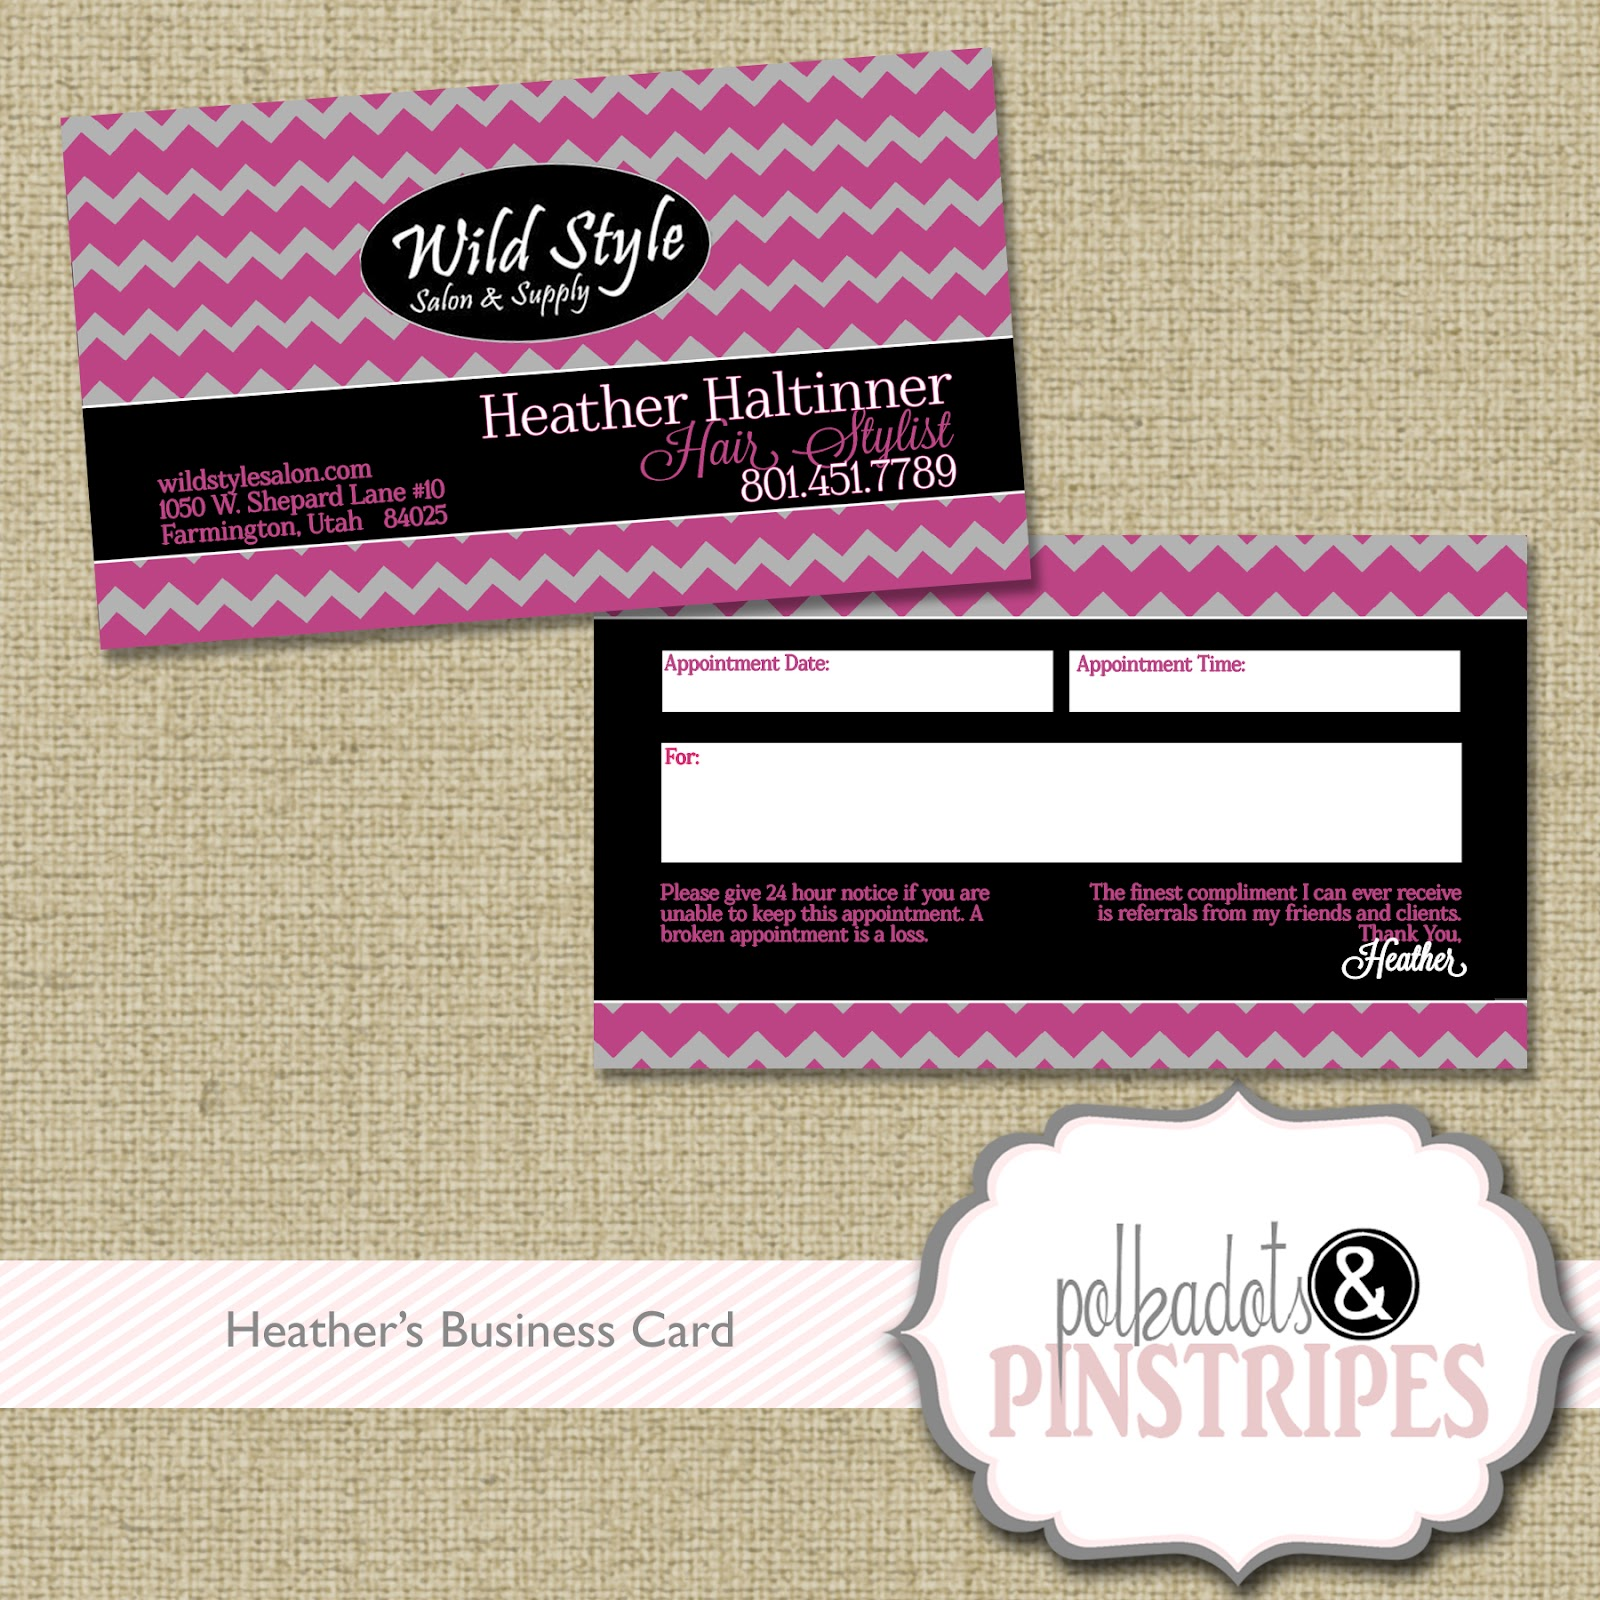 Polka Dots \'n Pinstripes: Business Cards